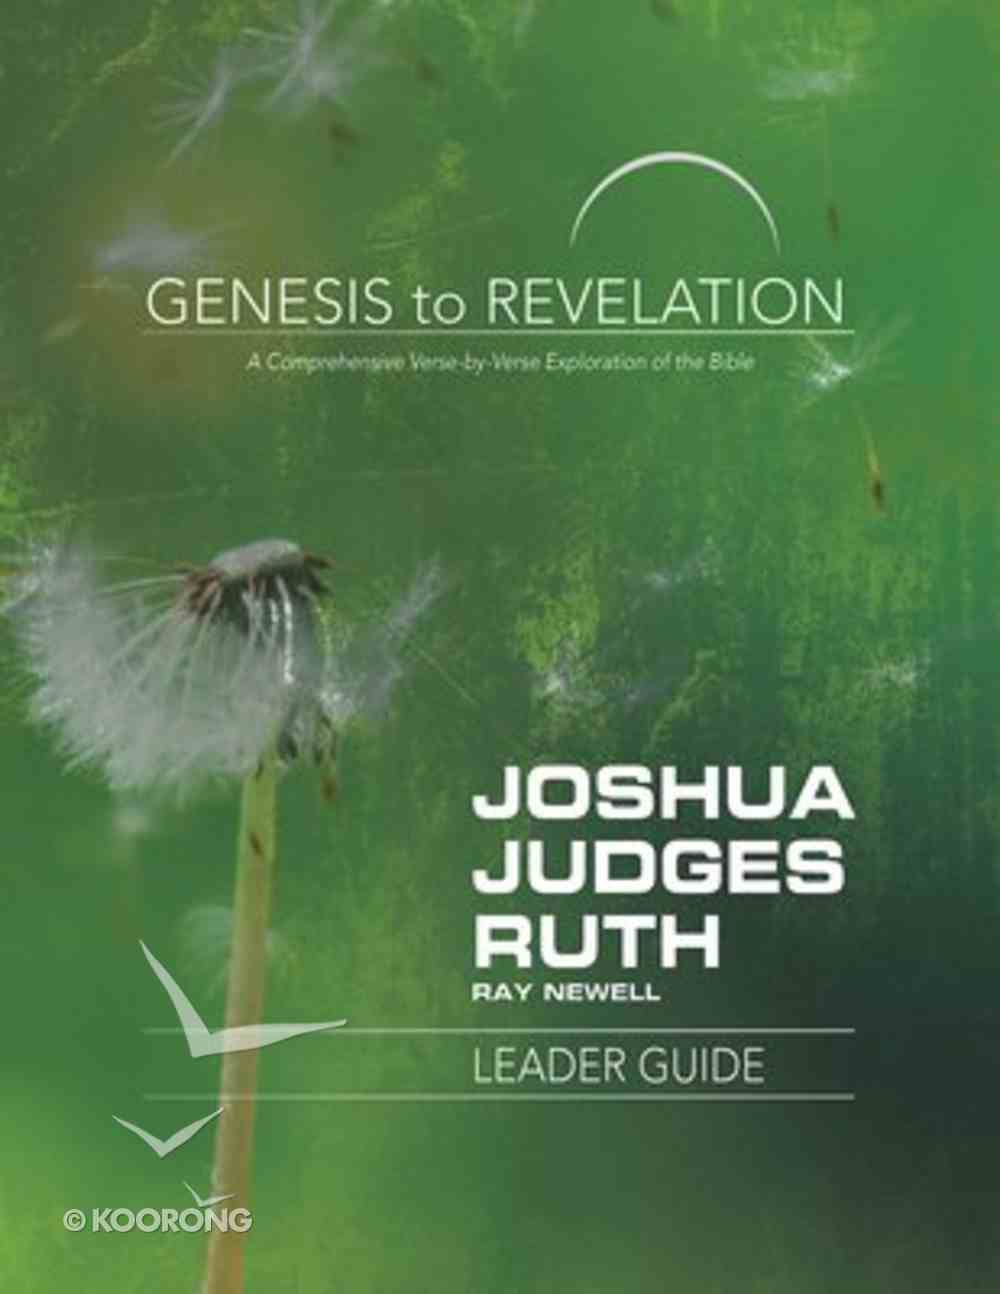 Joshua, Judges, Ruth : A Comprehensive Verse-By-Verse Exploration of the Bible (Leader Guide) (Genesis To Revelation Series) Paperback